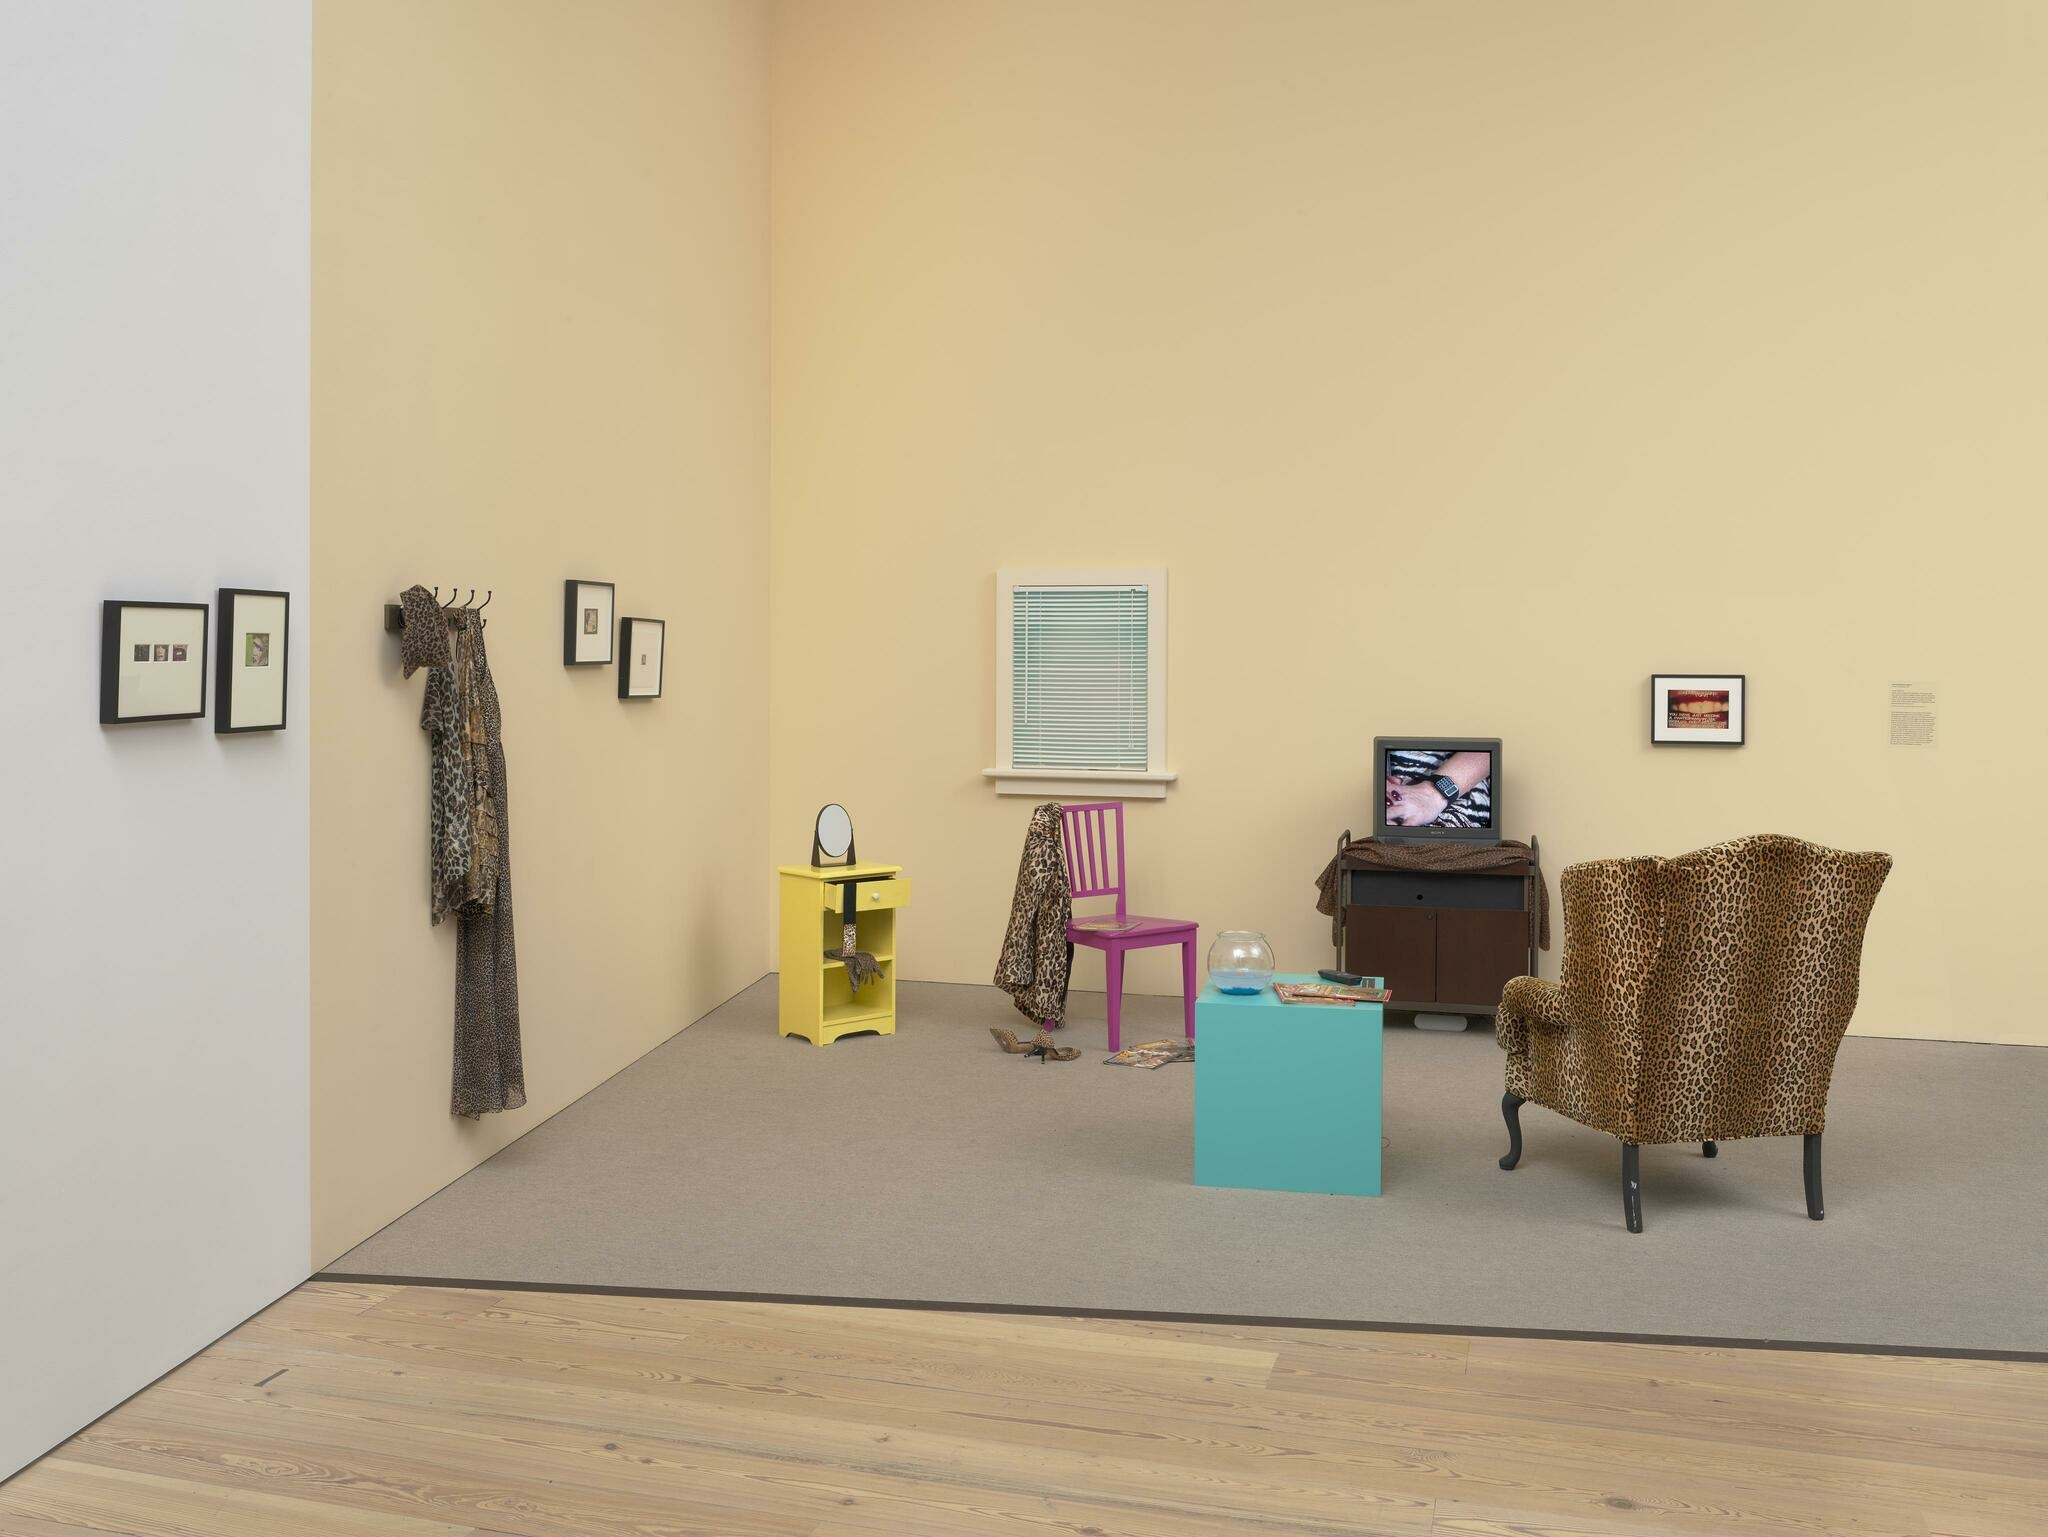 A woman's life plays out on a TV set in the middle of her living room.